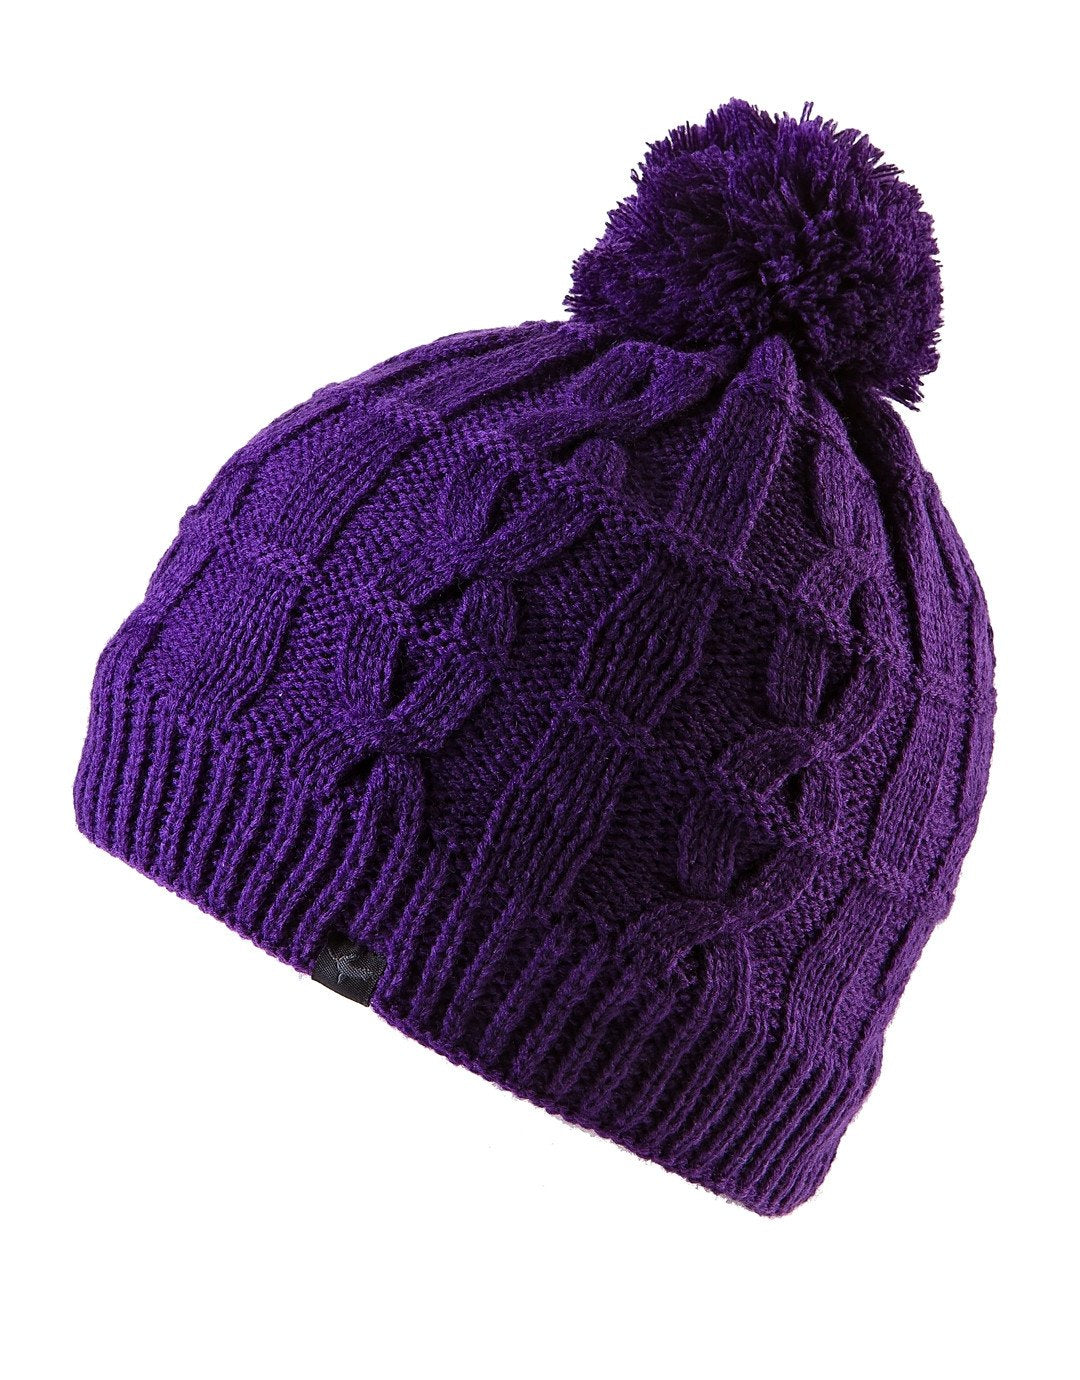 SealSkinz Waterproof Cable Knit Beanie Hat - Purple  1b88637ec6ca